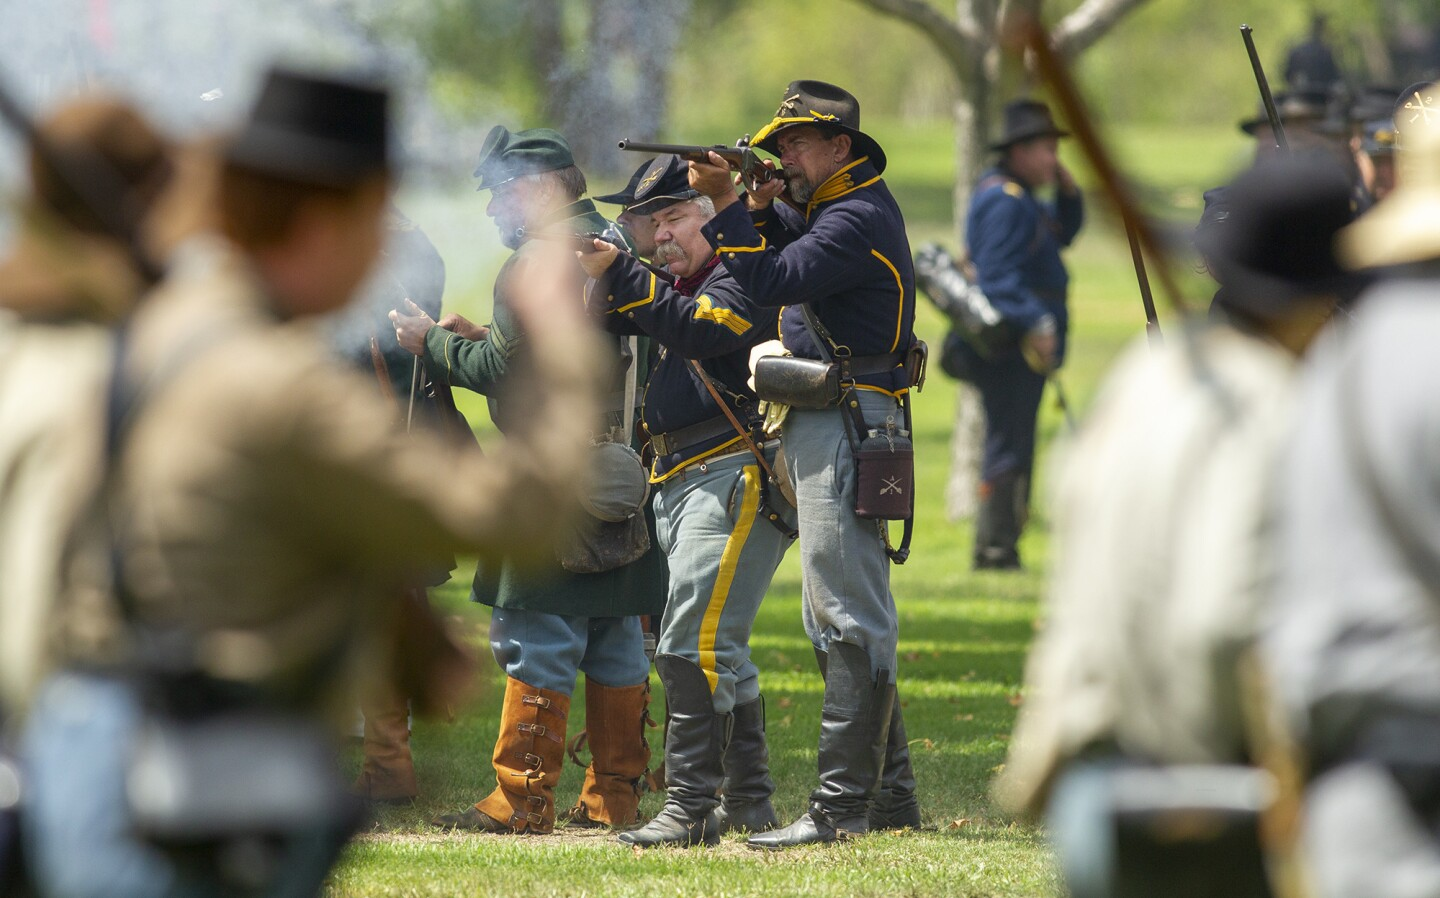 Photo Gallery: 24th annual Civil War Days Living History Event in Huntington Beach